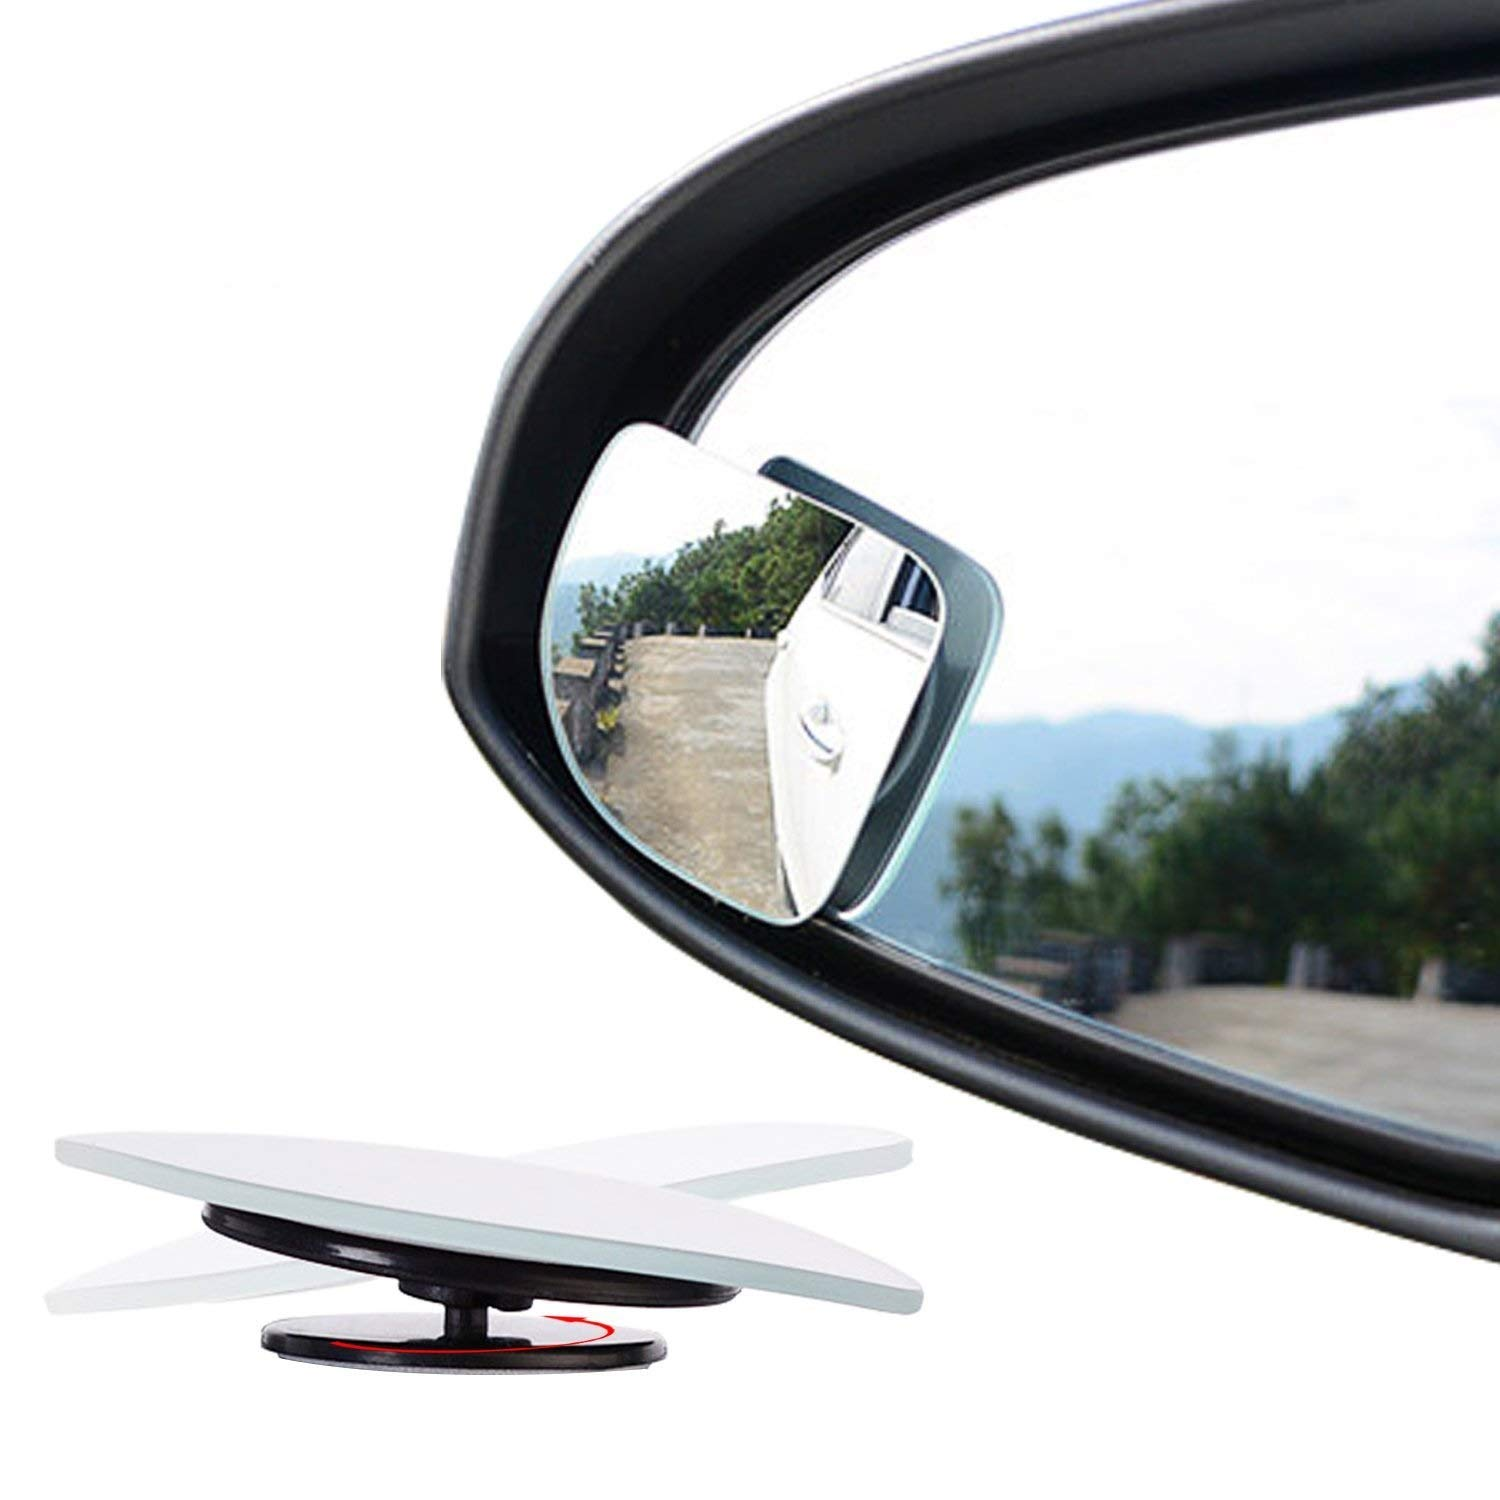 Ertek Blind Spot Mirror for Cars 2 Flameless Square Fan Shape Glass Car Side Mirror for Truck Small Convex Wide Angle Rear View Car Mirrors 1 Pair, Right/&Left